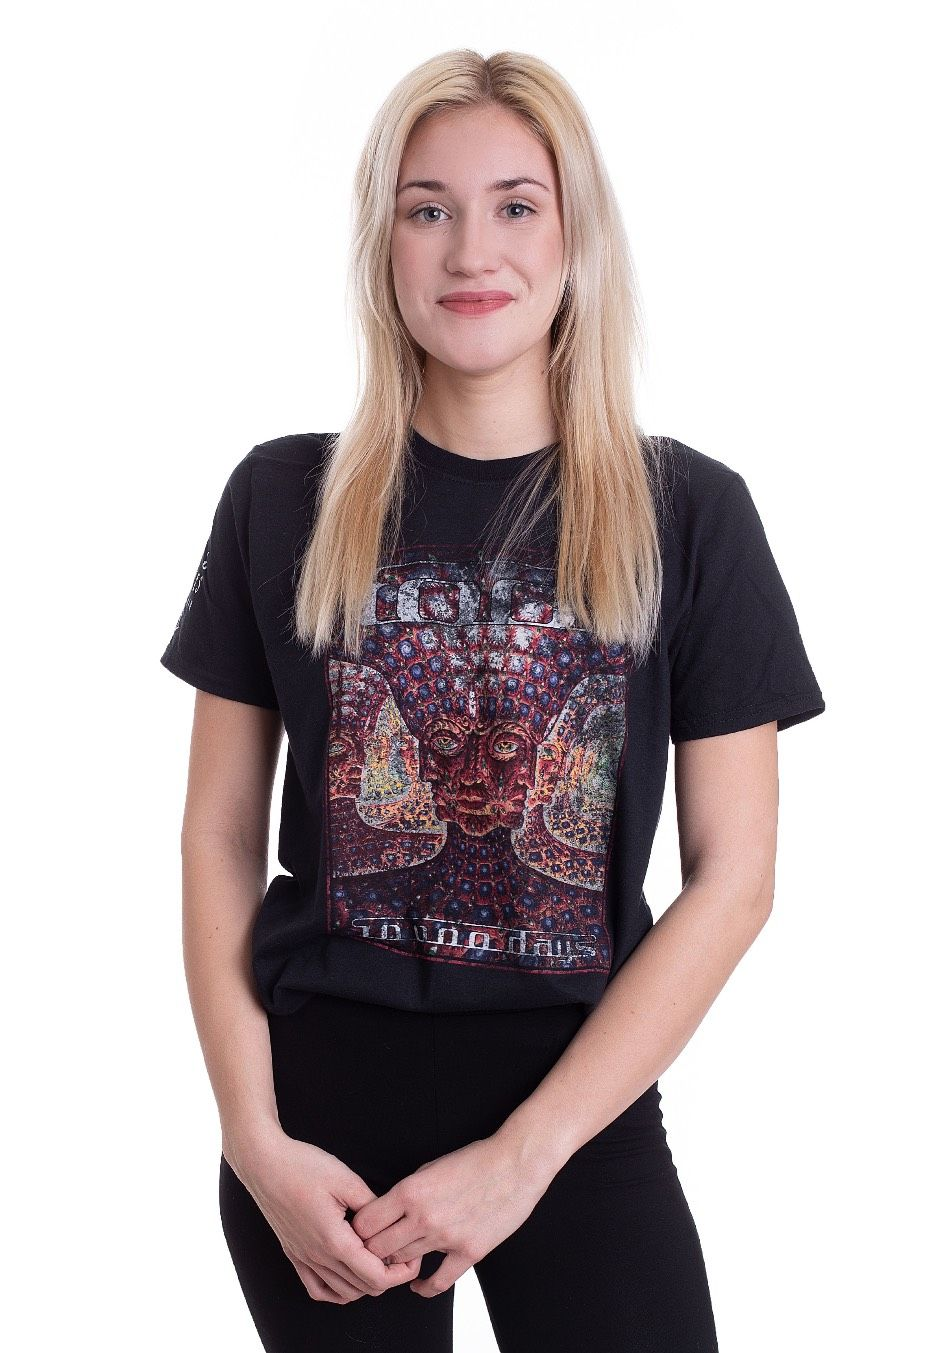 Checkout this out: Tool - 10000 Days - T-Shirt for 21,99€